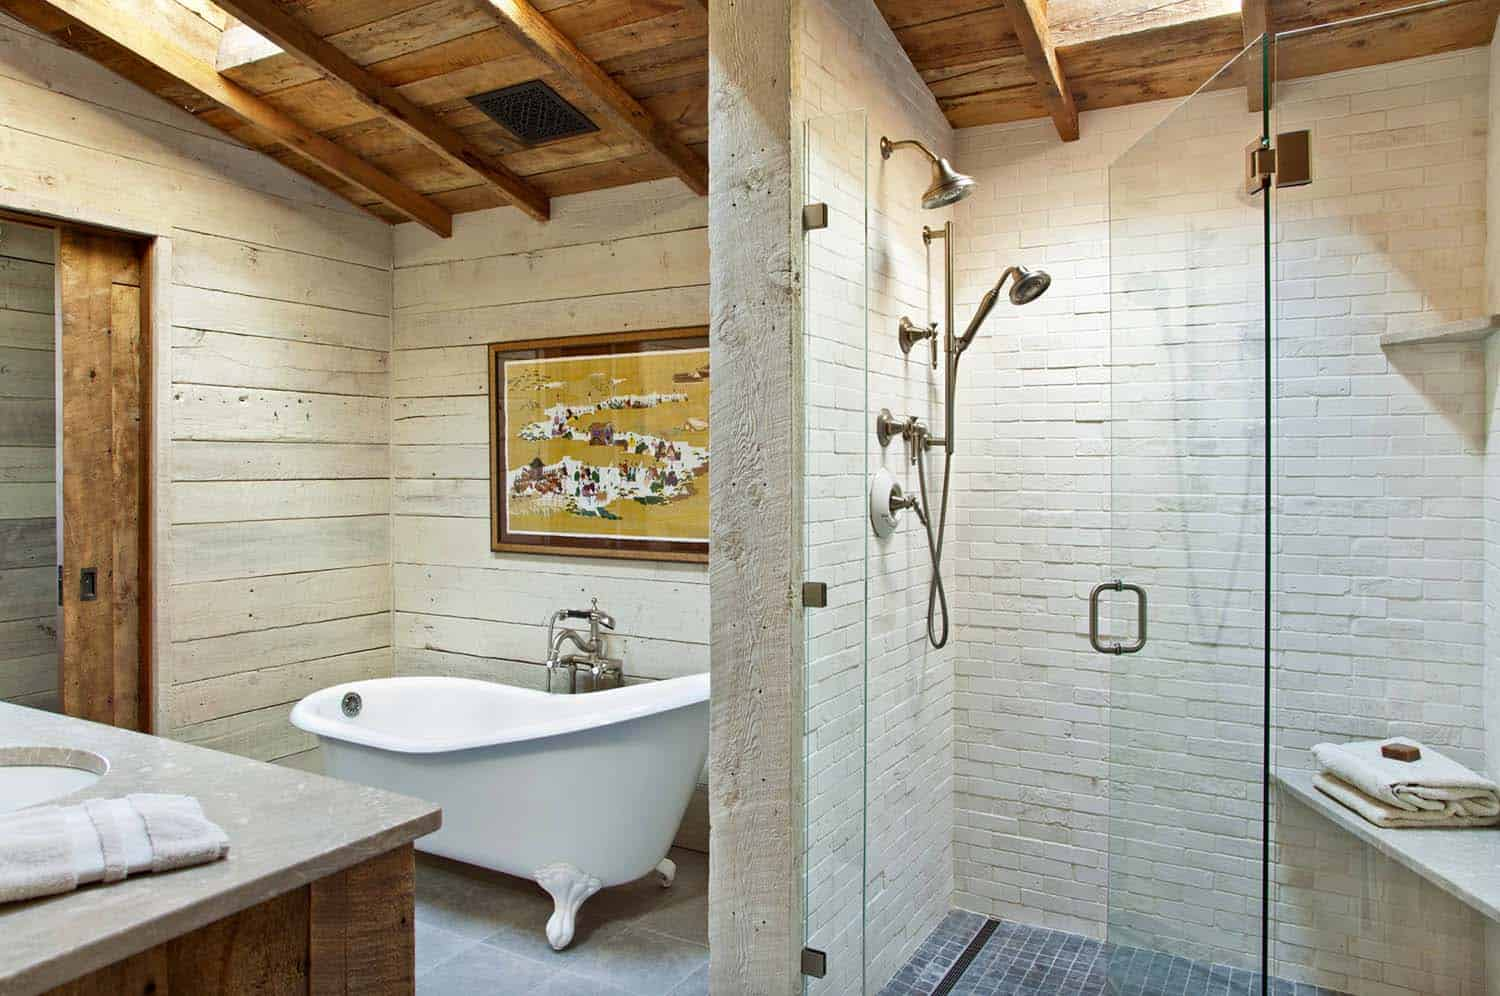 Rustic Mountain Retreat-Miller Roodell Architects-11-1 Kindesign